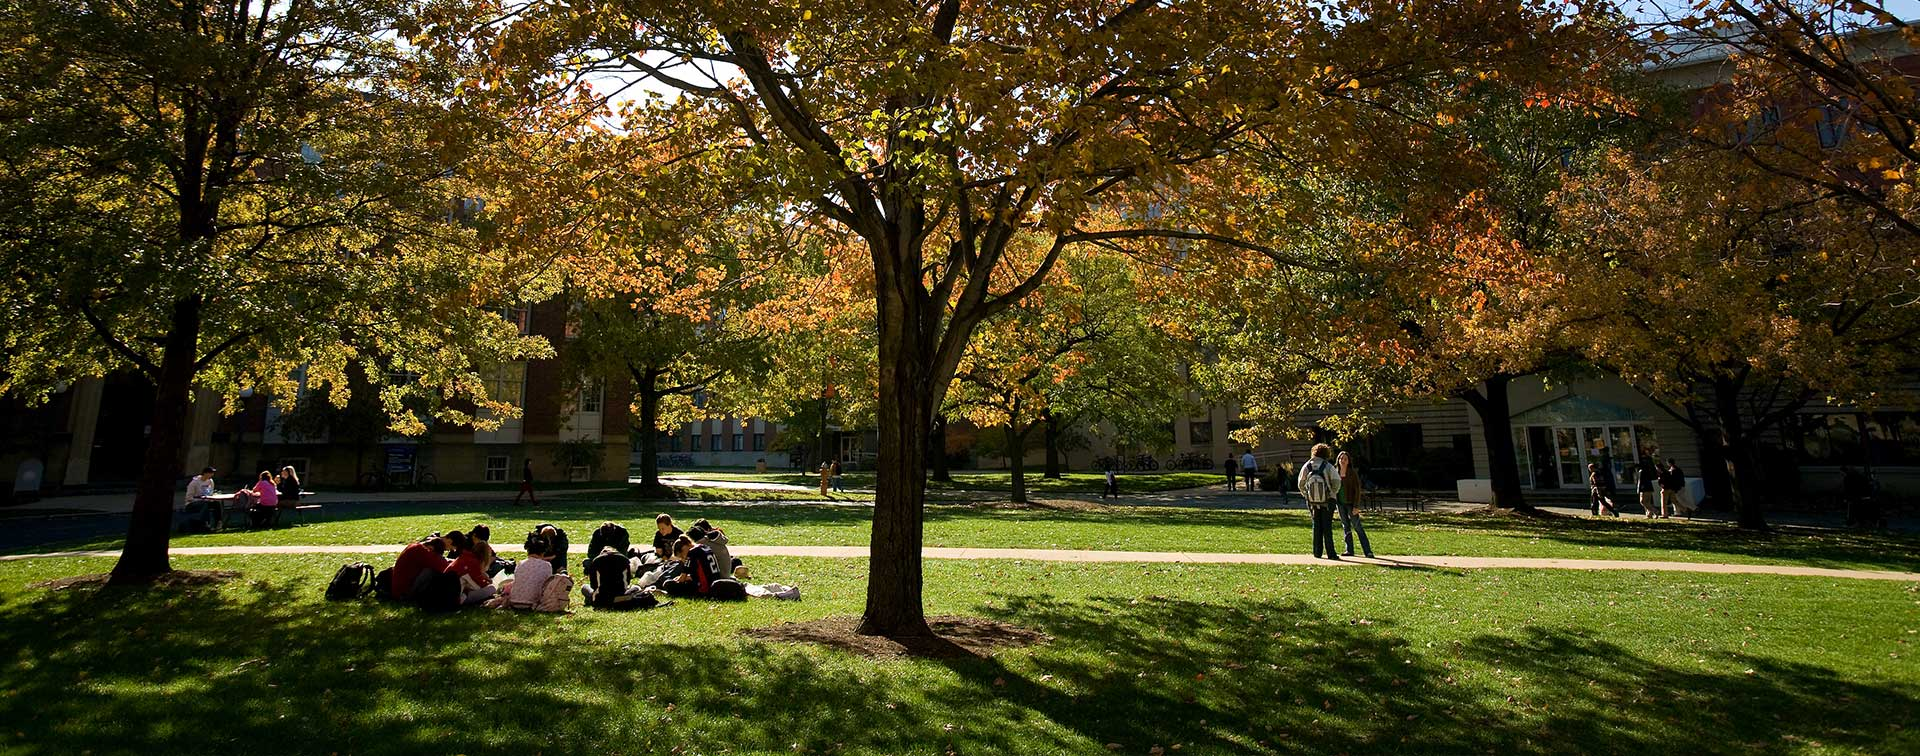 Photo of students studying on the lawn